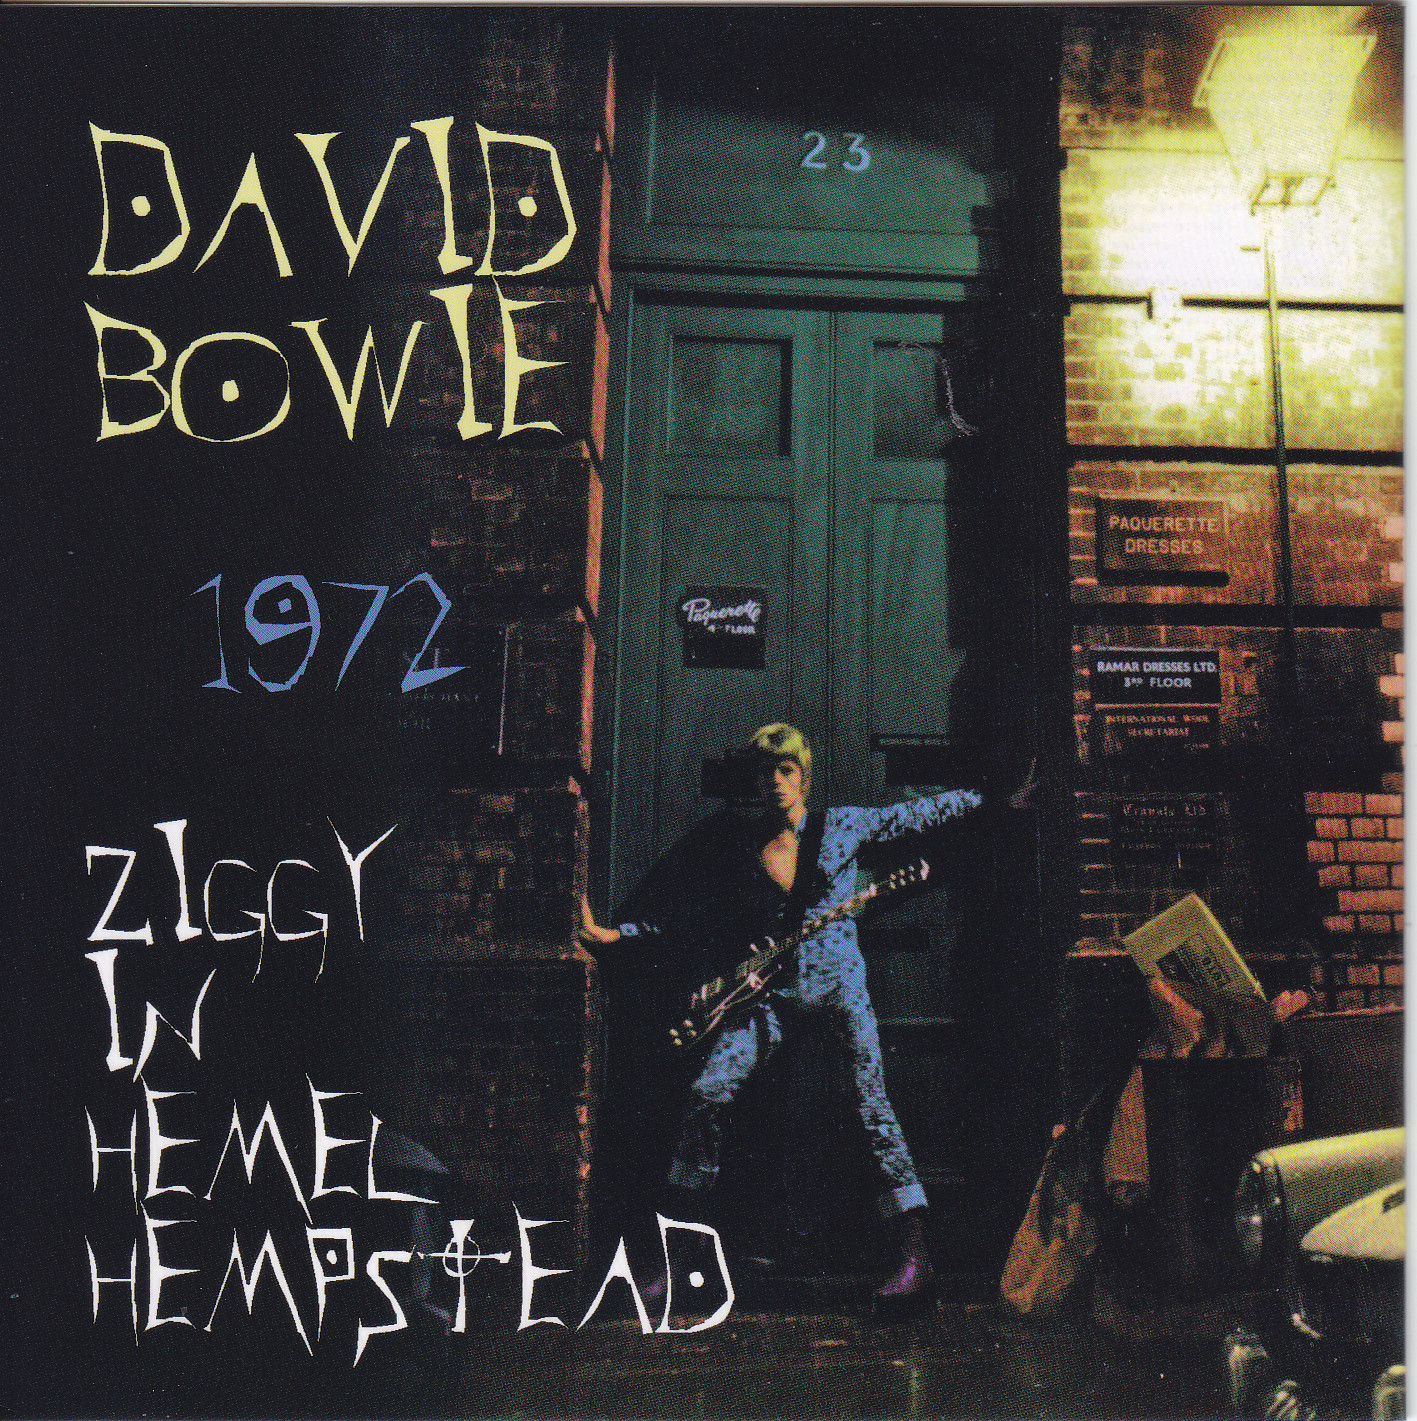 Reliquary: David Bowie [1972.05.07] Ziggy In Hemel Hempstead 1972